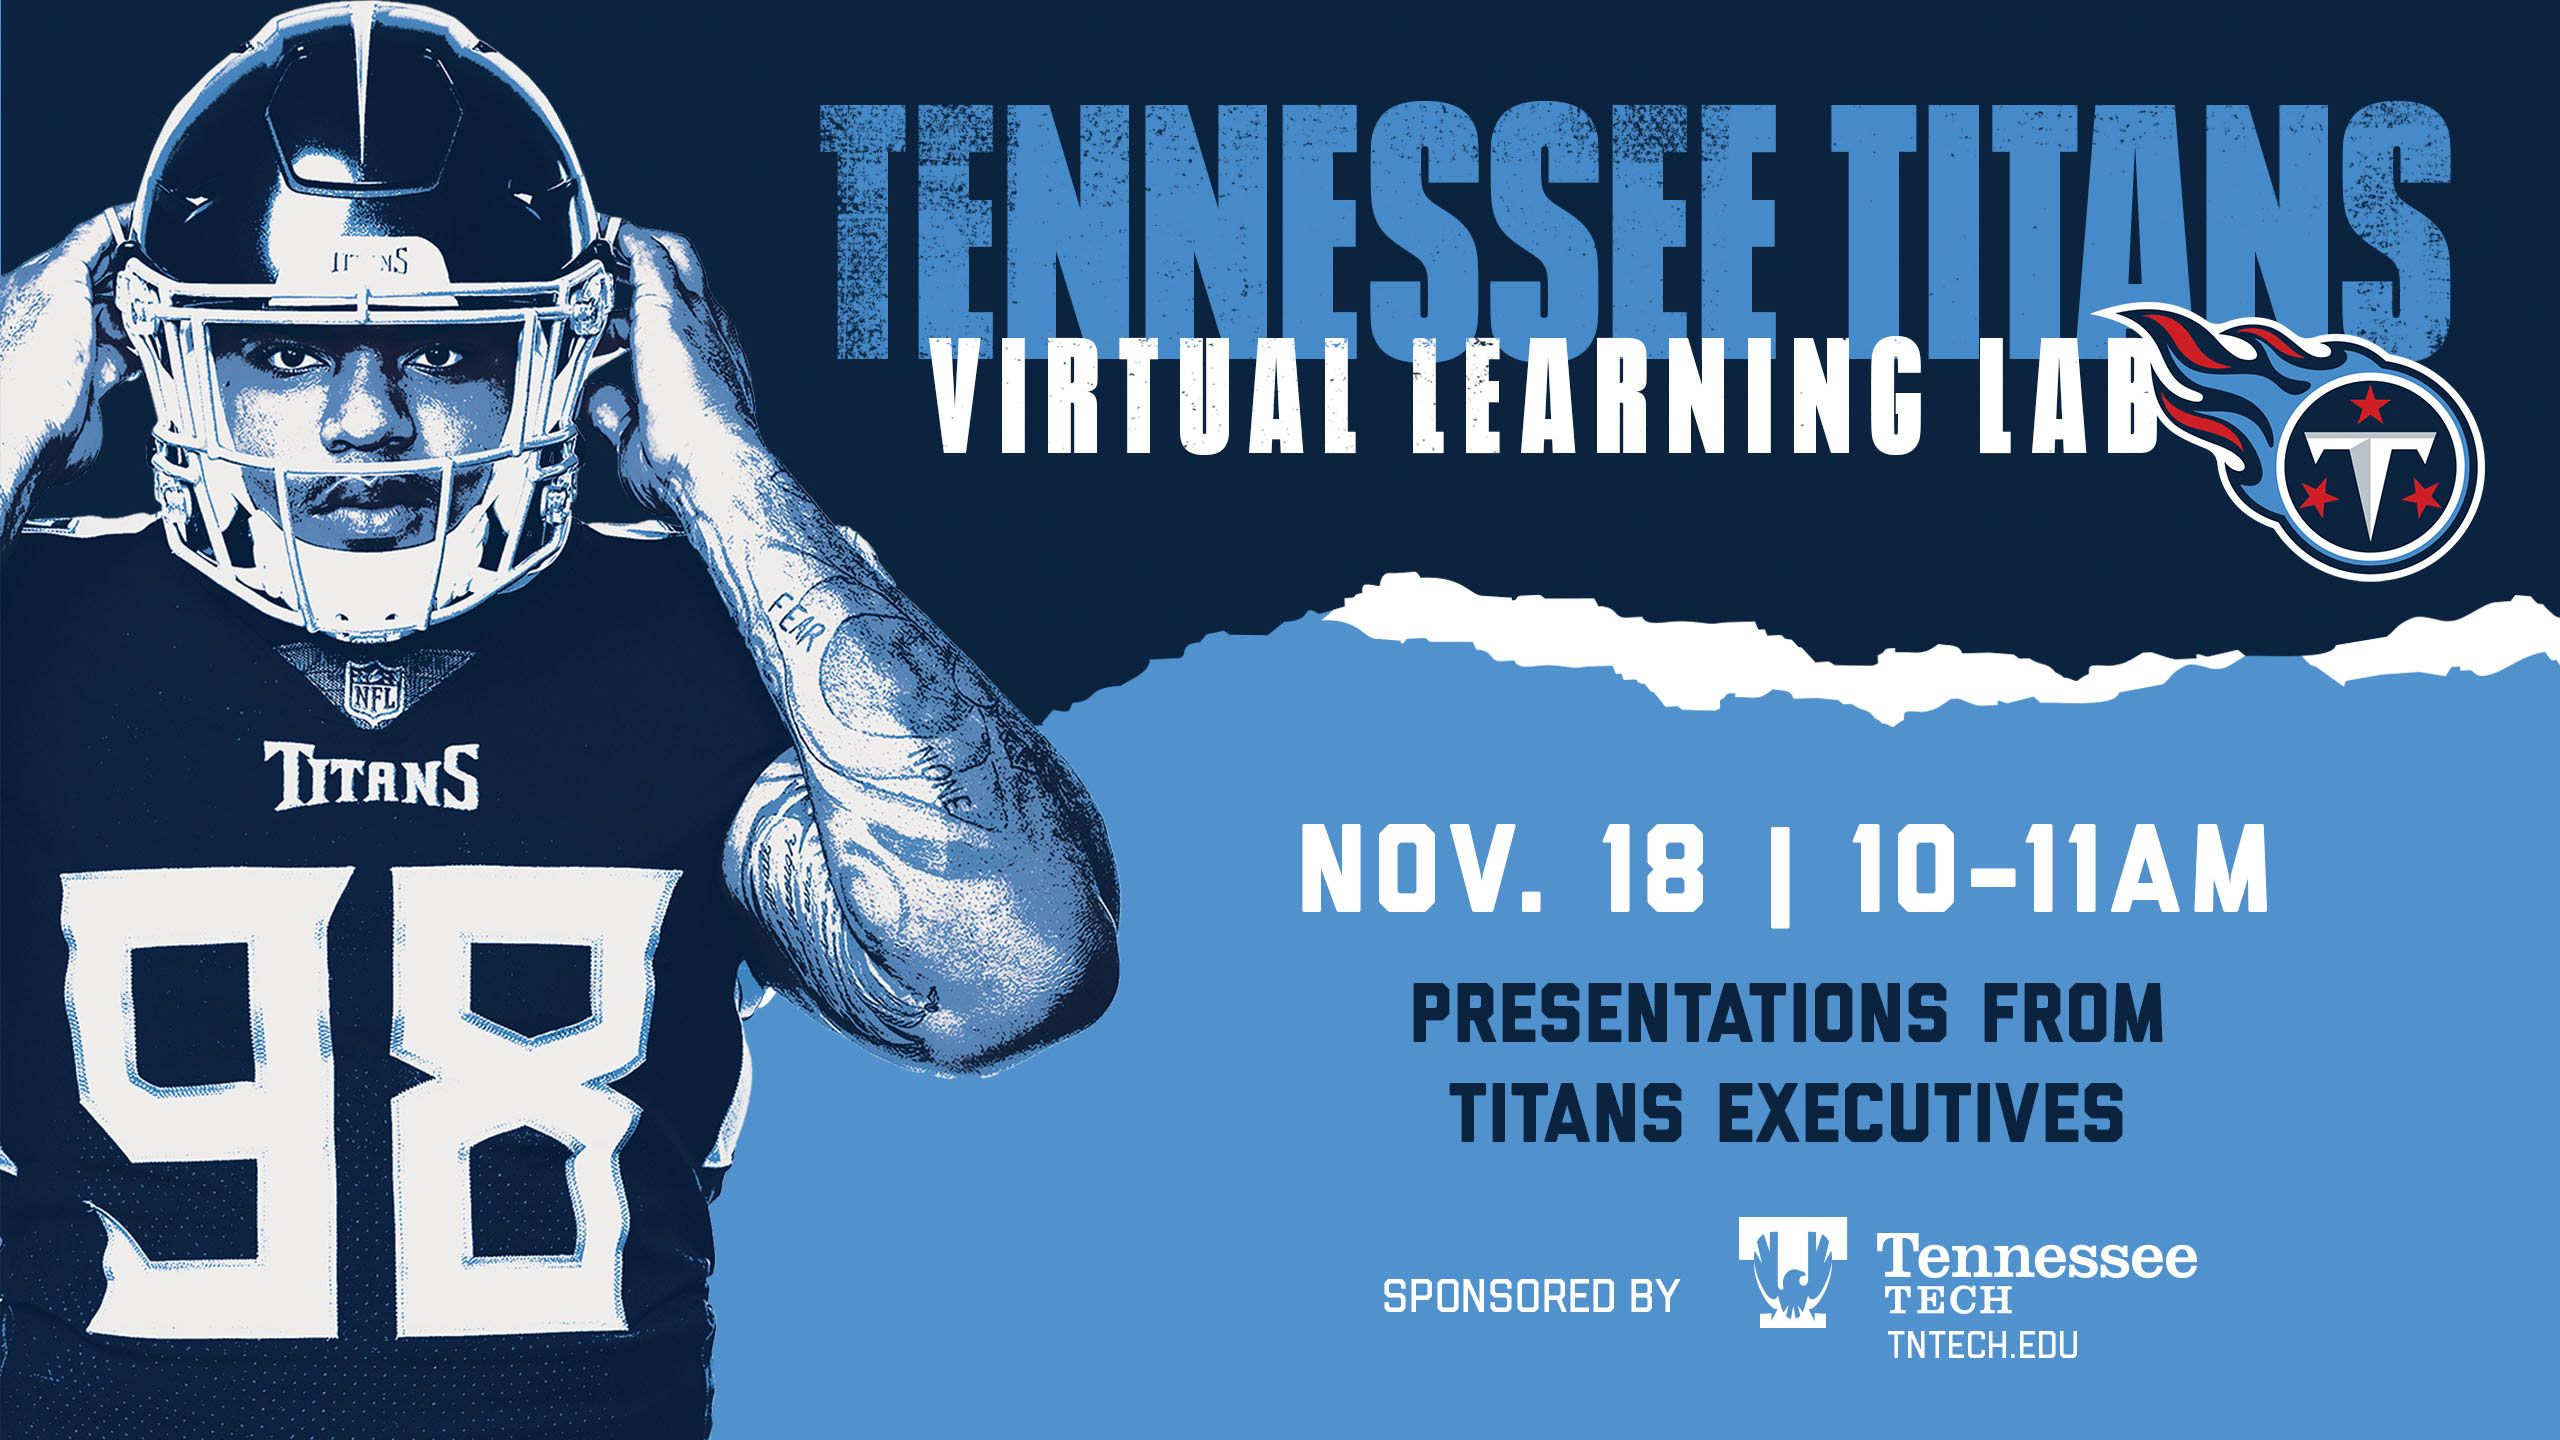 2020 Tennessee Titans Virtual Learning Lab presented by Tennessee Tech University